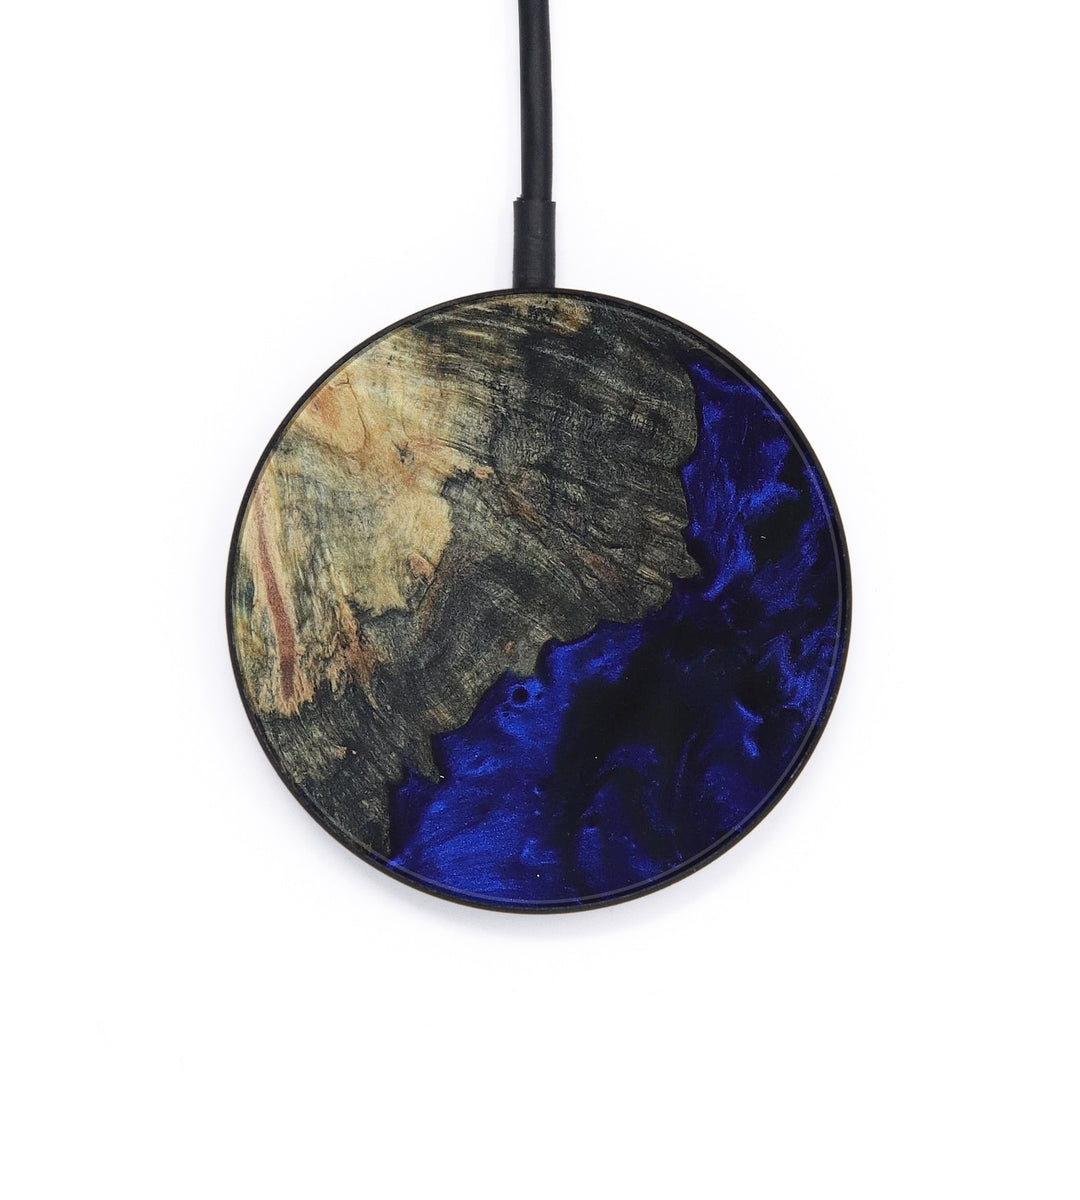 Circle Wood+Resin Wireless Charger - Zulfikar (Dark Blue, 393336)